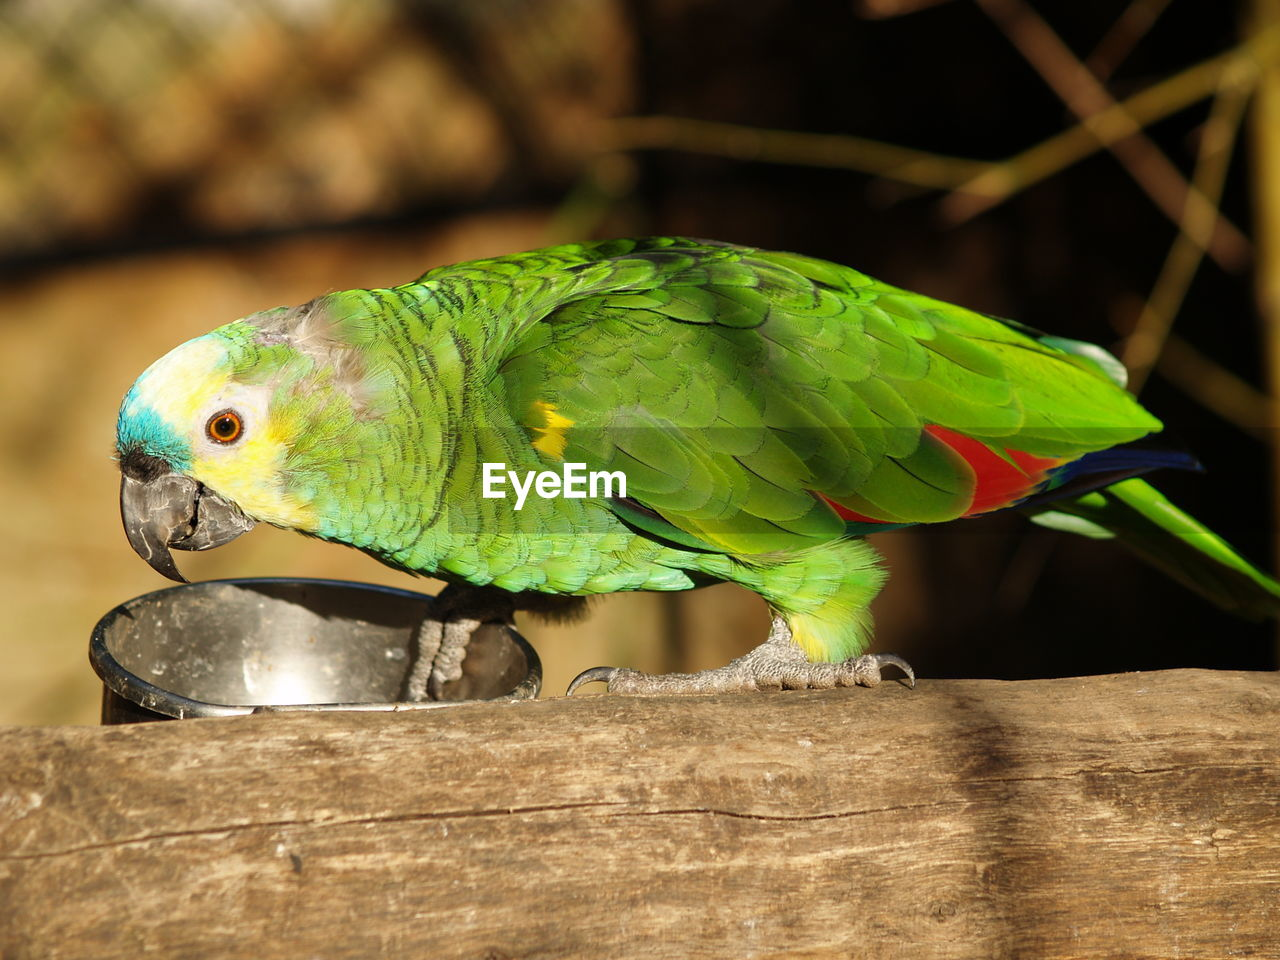 parrot, vertebrate, animal themes, animal, animal wildlife, bird, animals in the wild, green color, one animal, close-up, parakeet, wood - material, perching, no people, nature, focus on foreground, day, outdoors, animals in captivity, cage, beak